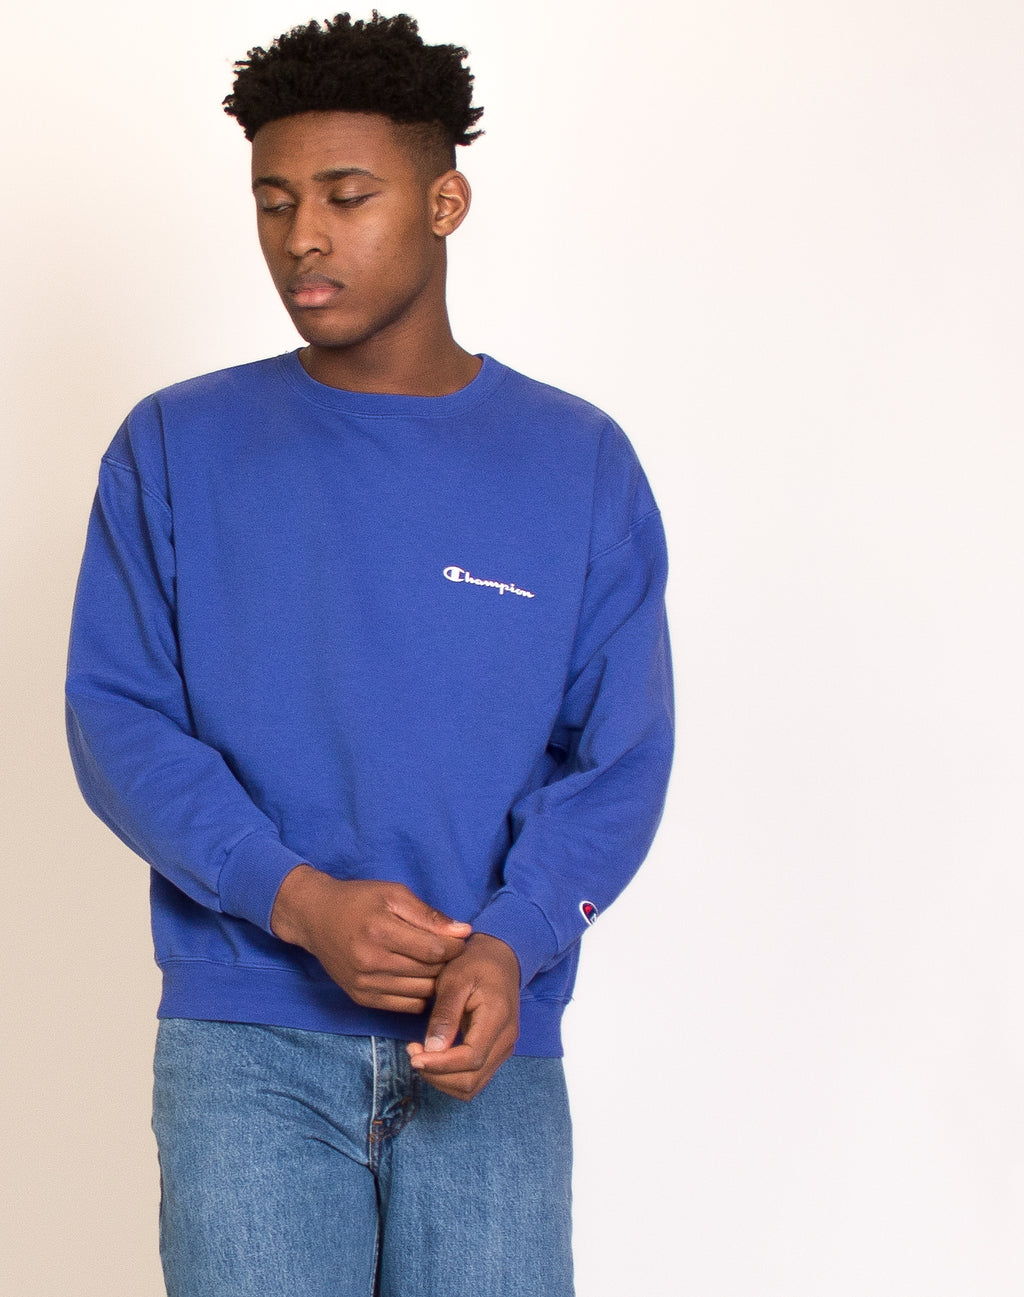 CHAMPION BLUE SWEATSHIRT